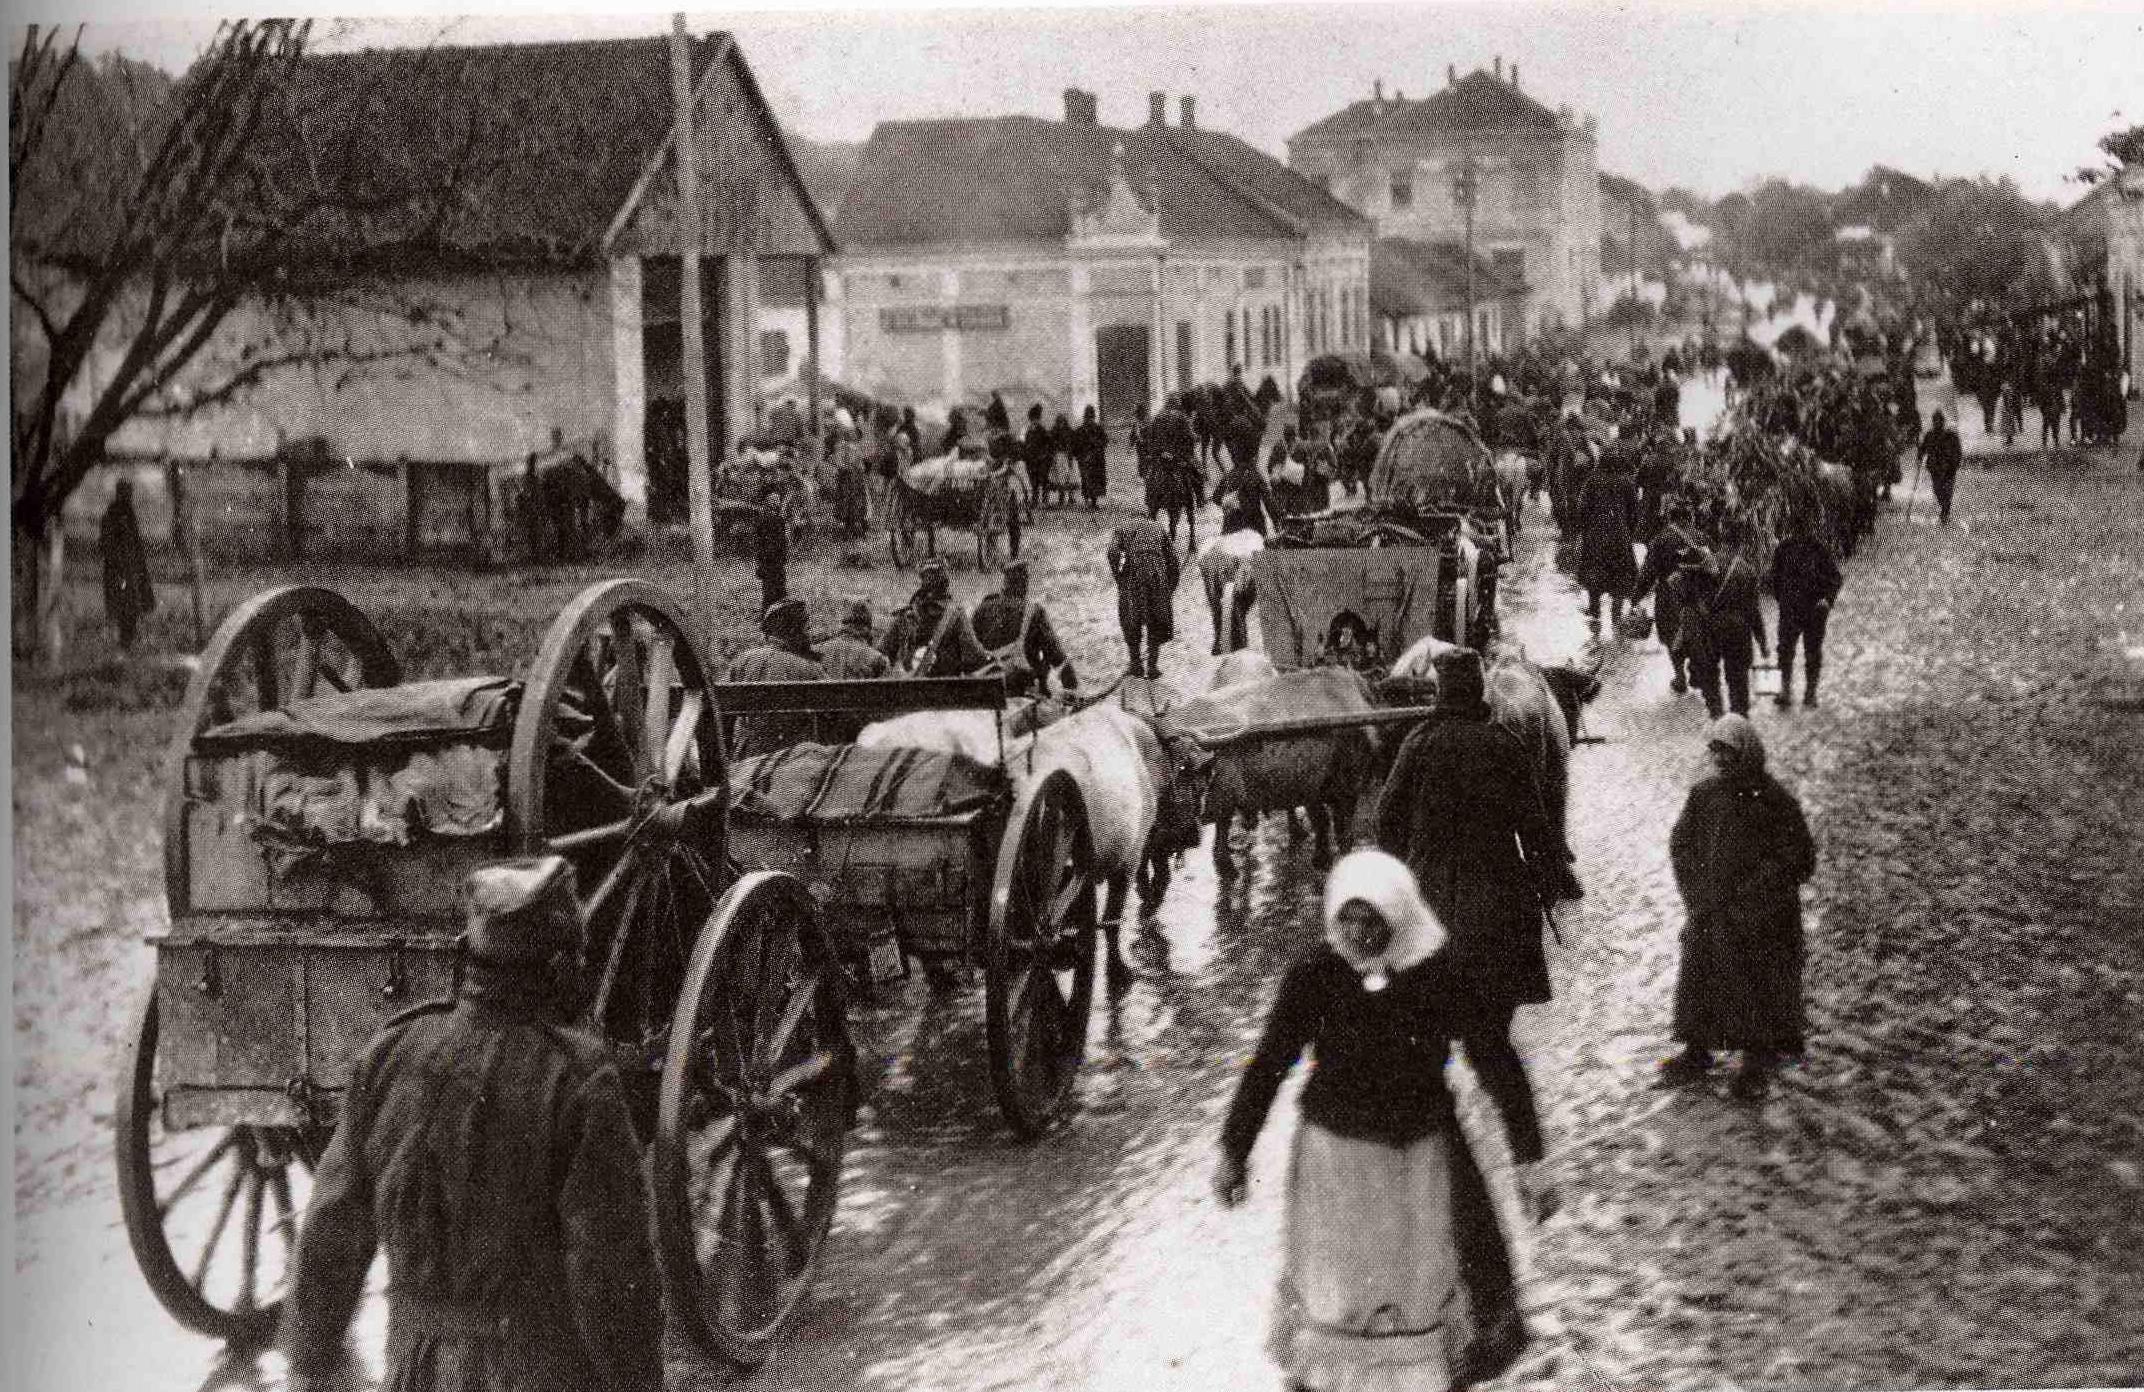 Refugees fleeing the fighting on the Eastern Front.